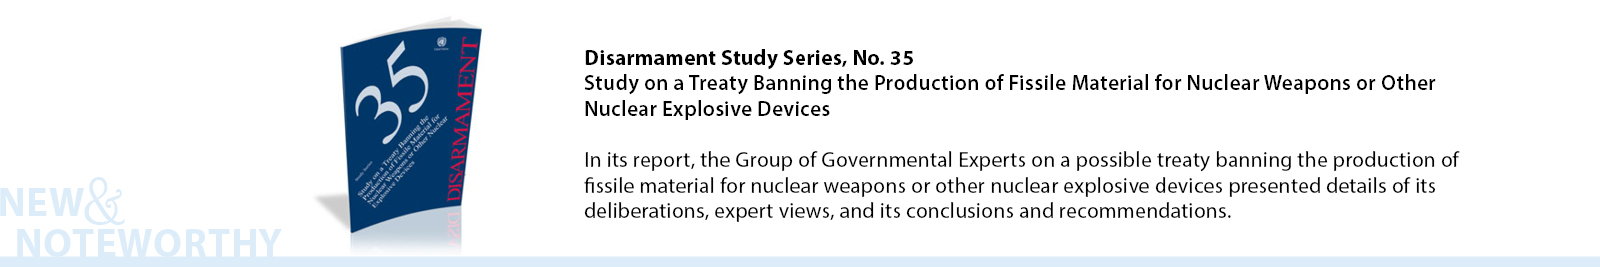 In its report, the Group of Governmental Experts on a possible treaty banning the production of fissile material for nuclear weapons or other nuclear explosive devices presented details of its deliberations, expert views, and its conclusions and recommendations.